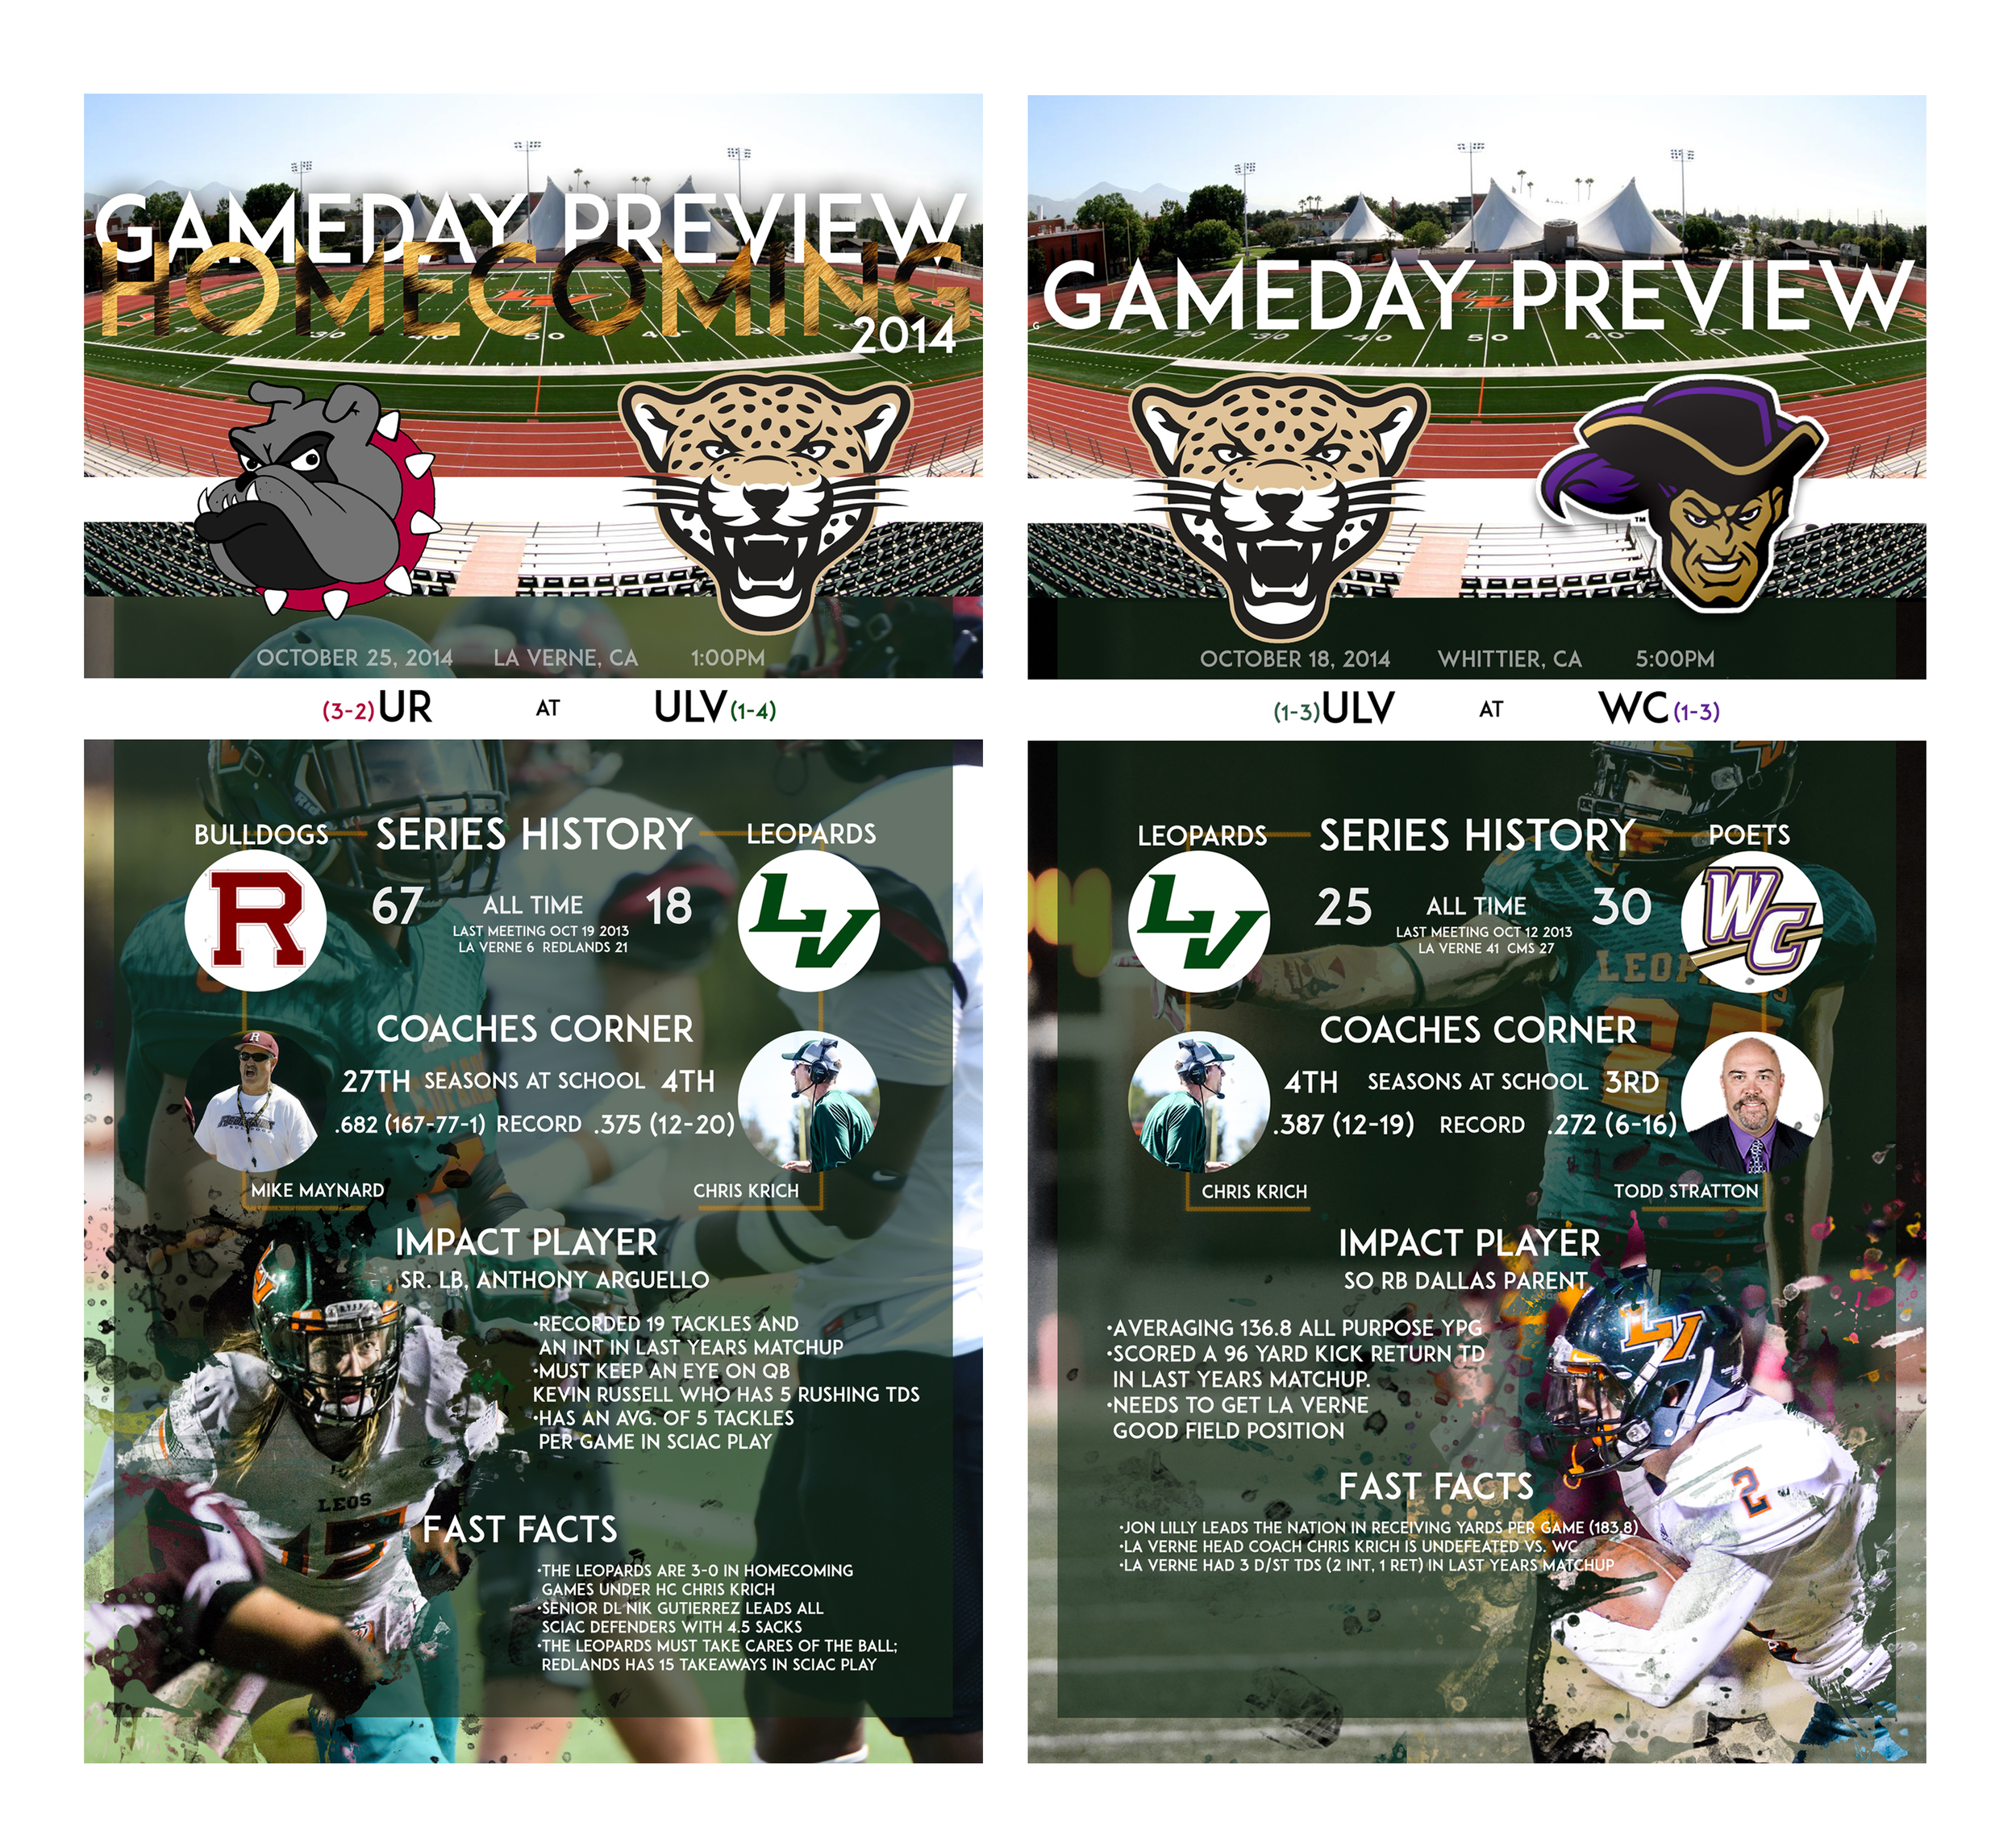 Preview graphics done for the University of La Verne football team for that weeks contest.